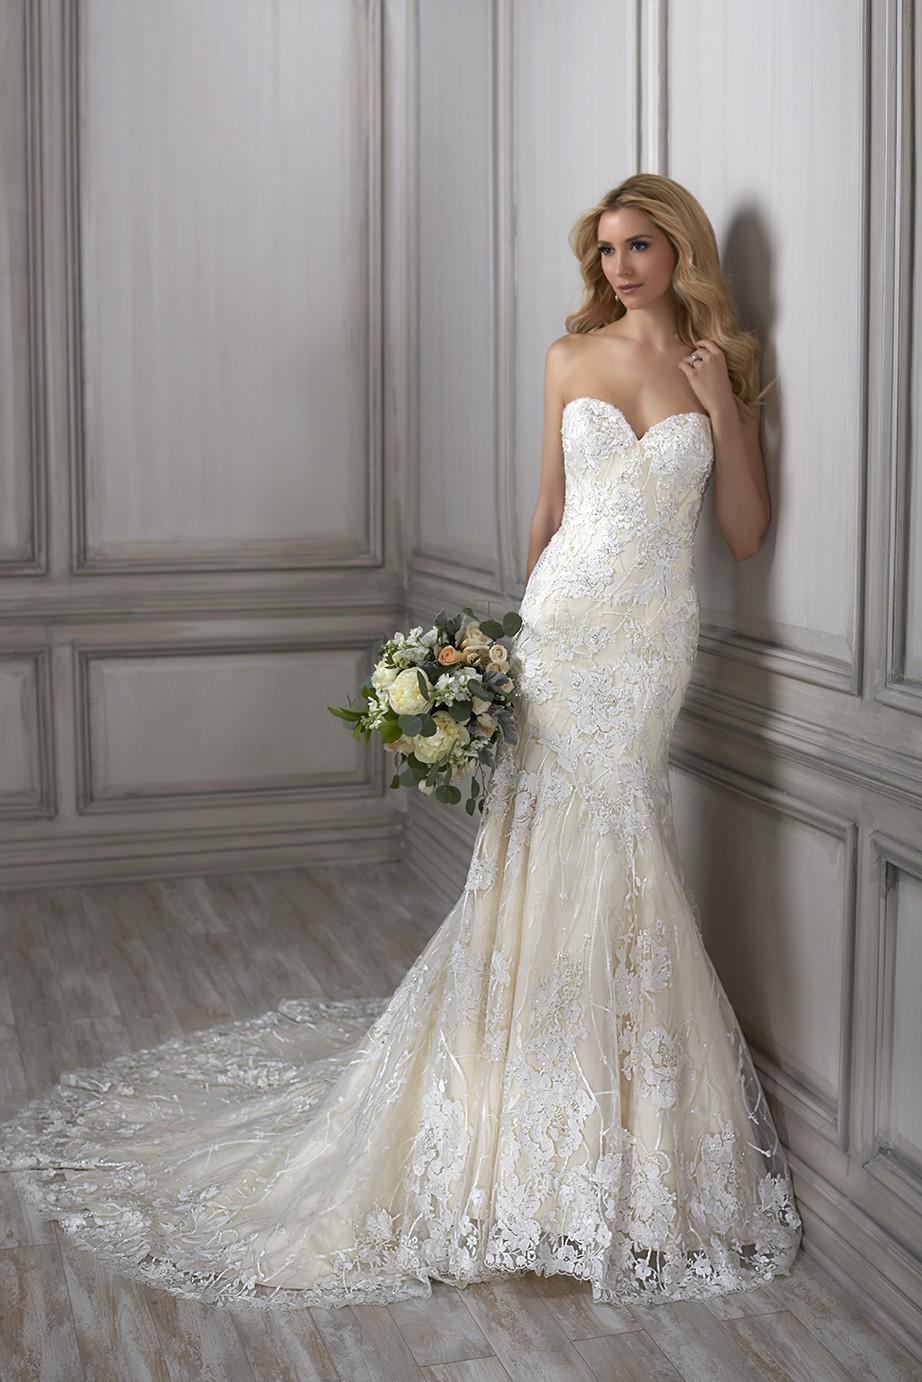 Adrianna Papell Betsy 31063 Sample Wedding Dress On Sale 43 Off